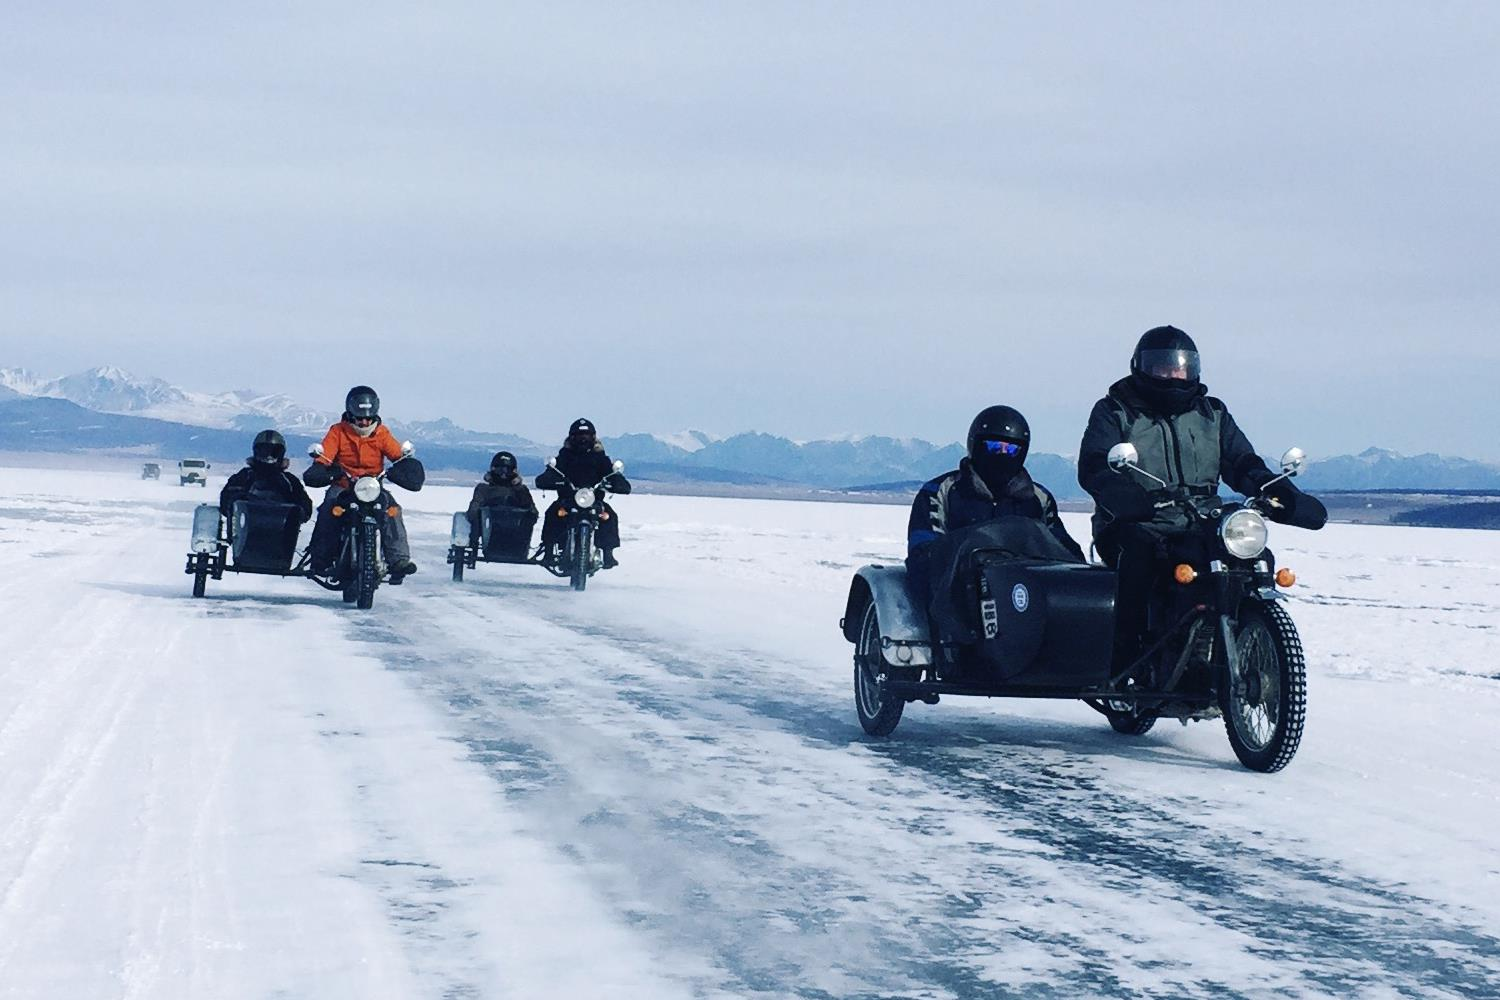 Motorbikes and sidecars on the frozen lakes of Mongolia